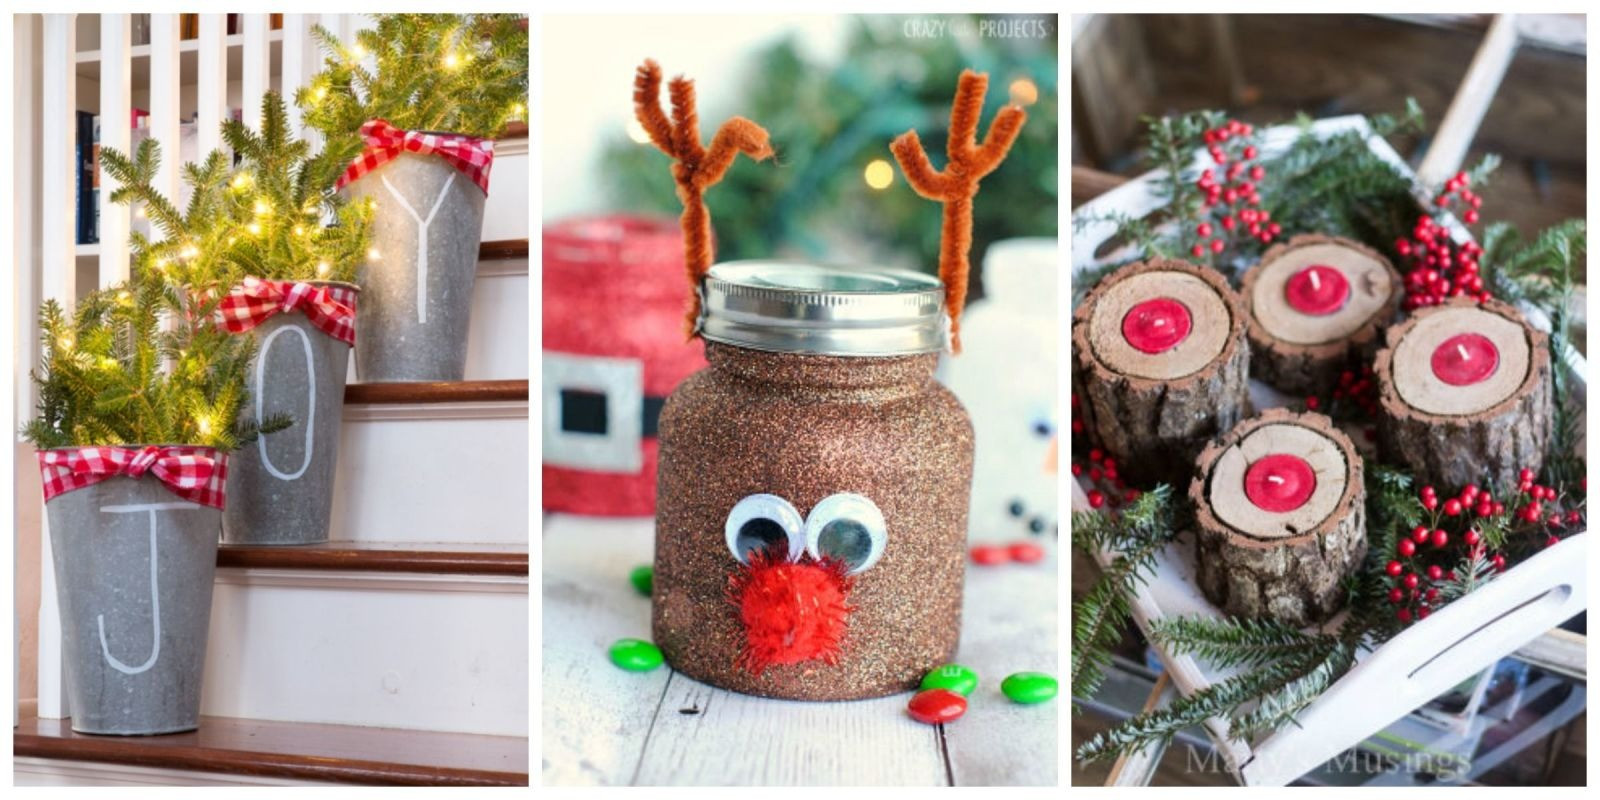 Home Craft Ideas For Adults  28 Papercraft Ideas For Christmas That Will Change Your